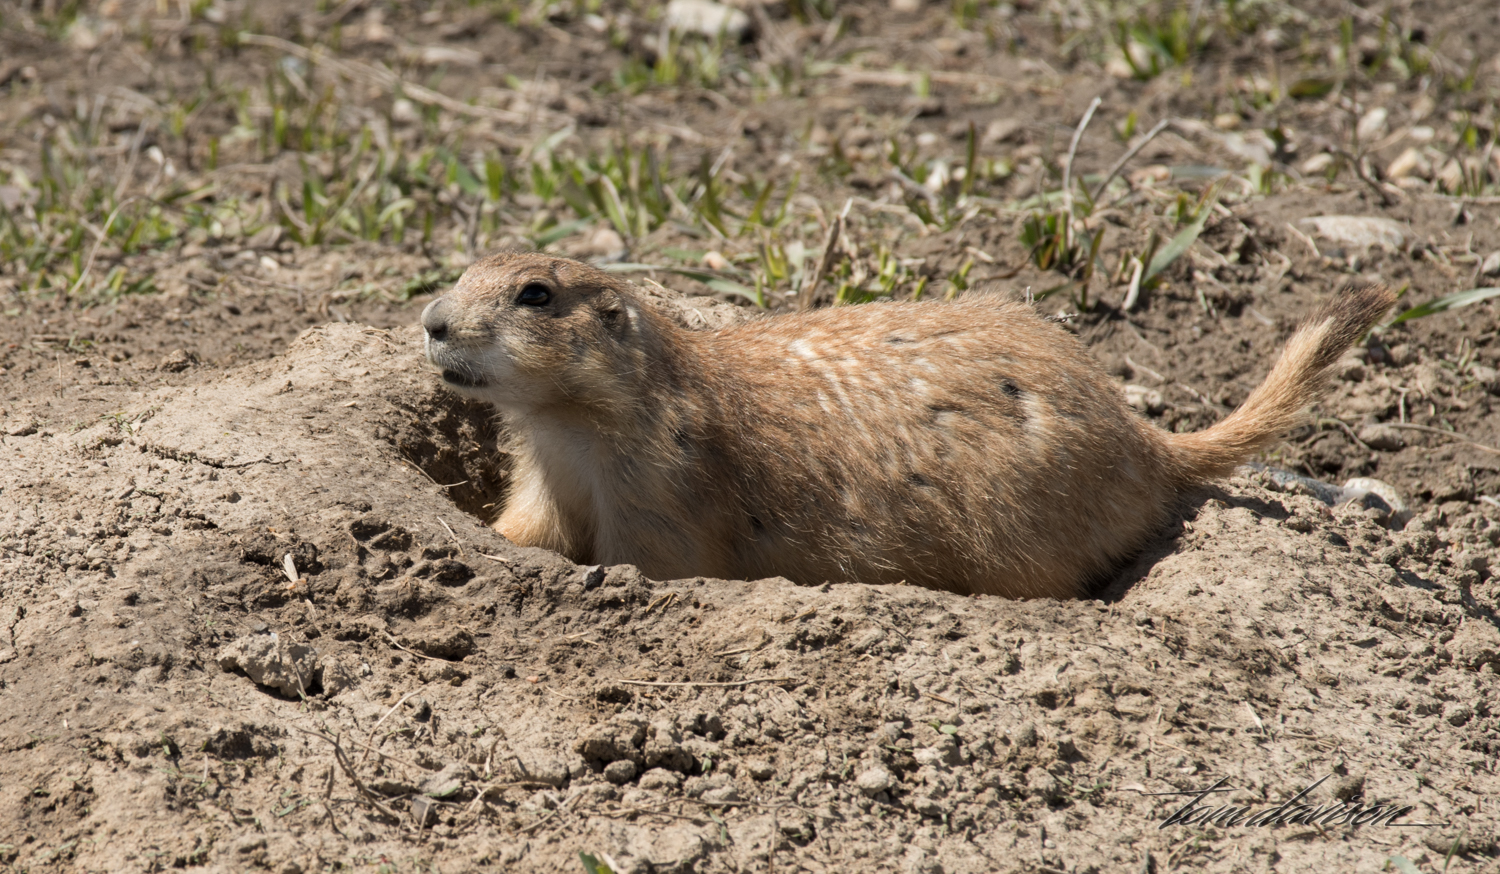 This is a prairie dog. I would have been thrilled to spot a black-footed ferret. The ferrets were once thought to be extinct but were discovered in the wilderness of Wyoming. A program to save them in captivity and then reintroduce them to the prairie in the Badlands National Park seems to have been successful.